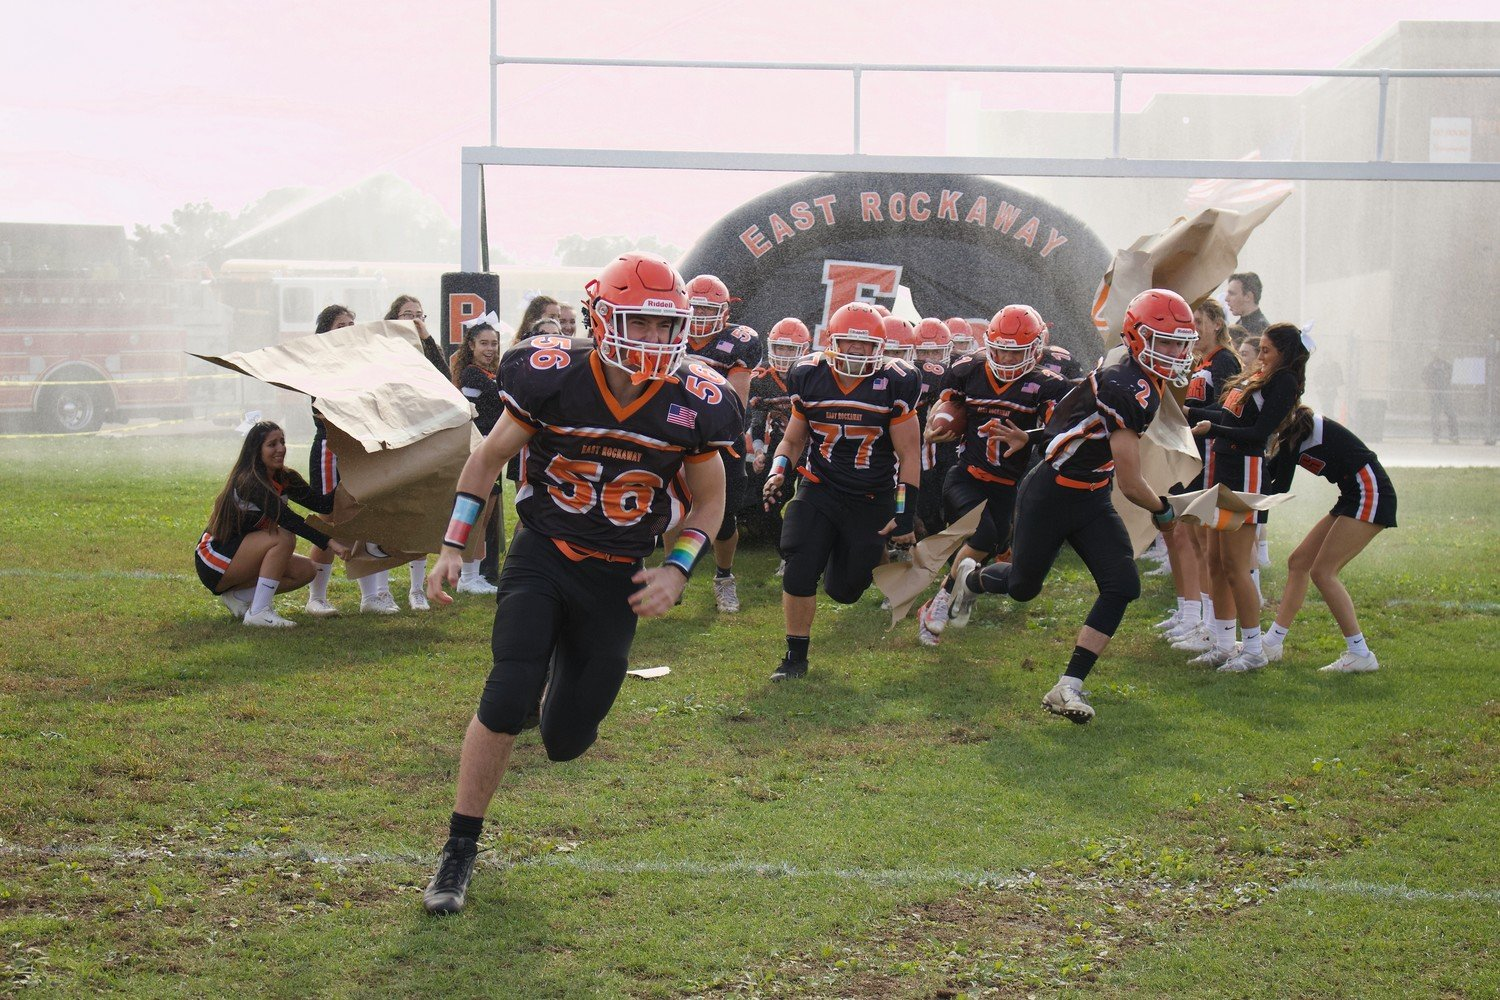 East Rockaway hosts its Homecoming game on Sept. 21 against Carle Place/Wheatley at 3 p.m., which will be preceded by a parade on Friday.